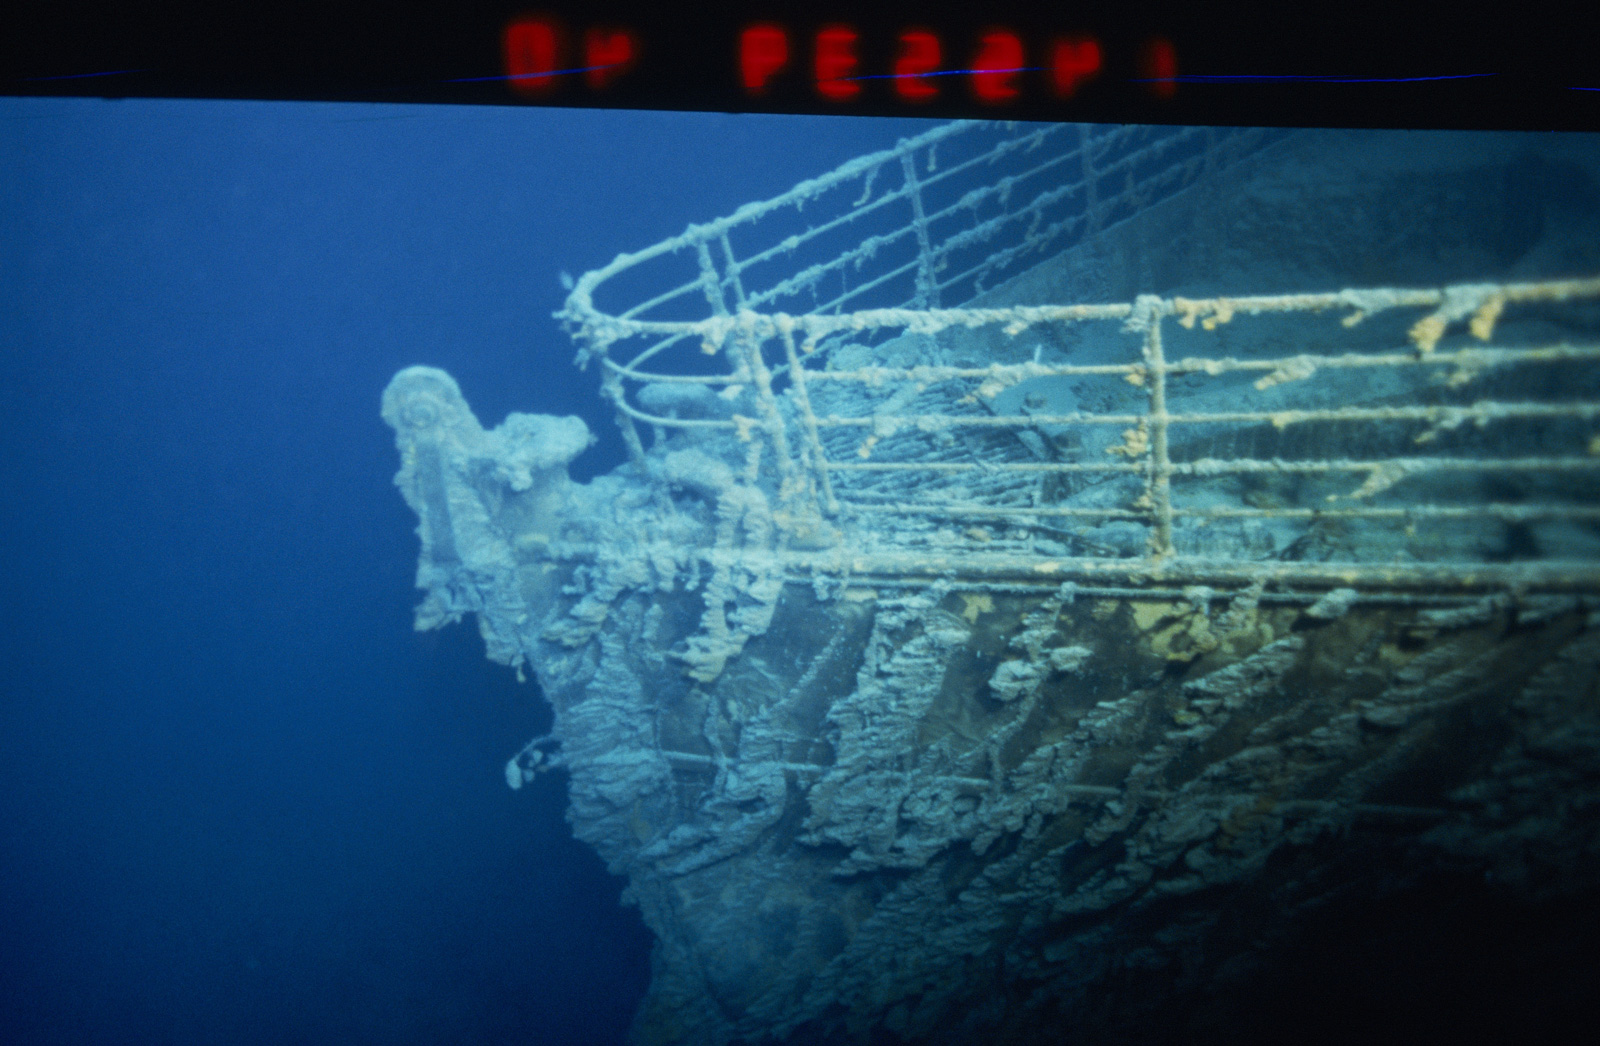 The Titanic wreck.